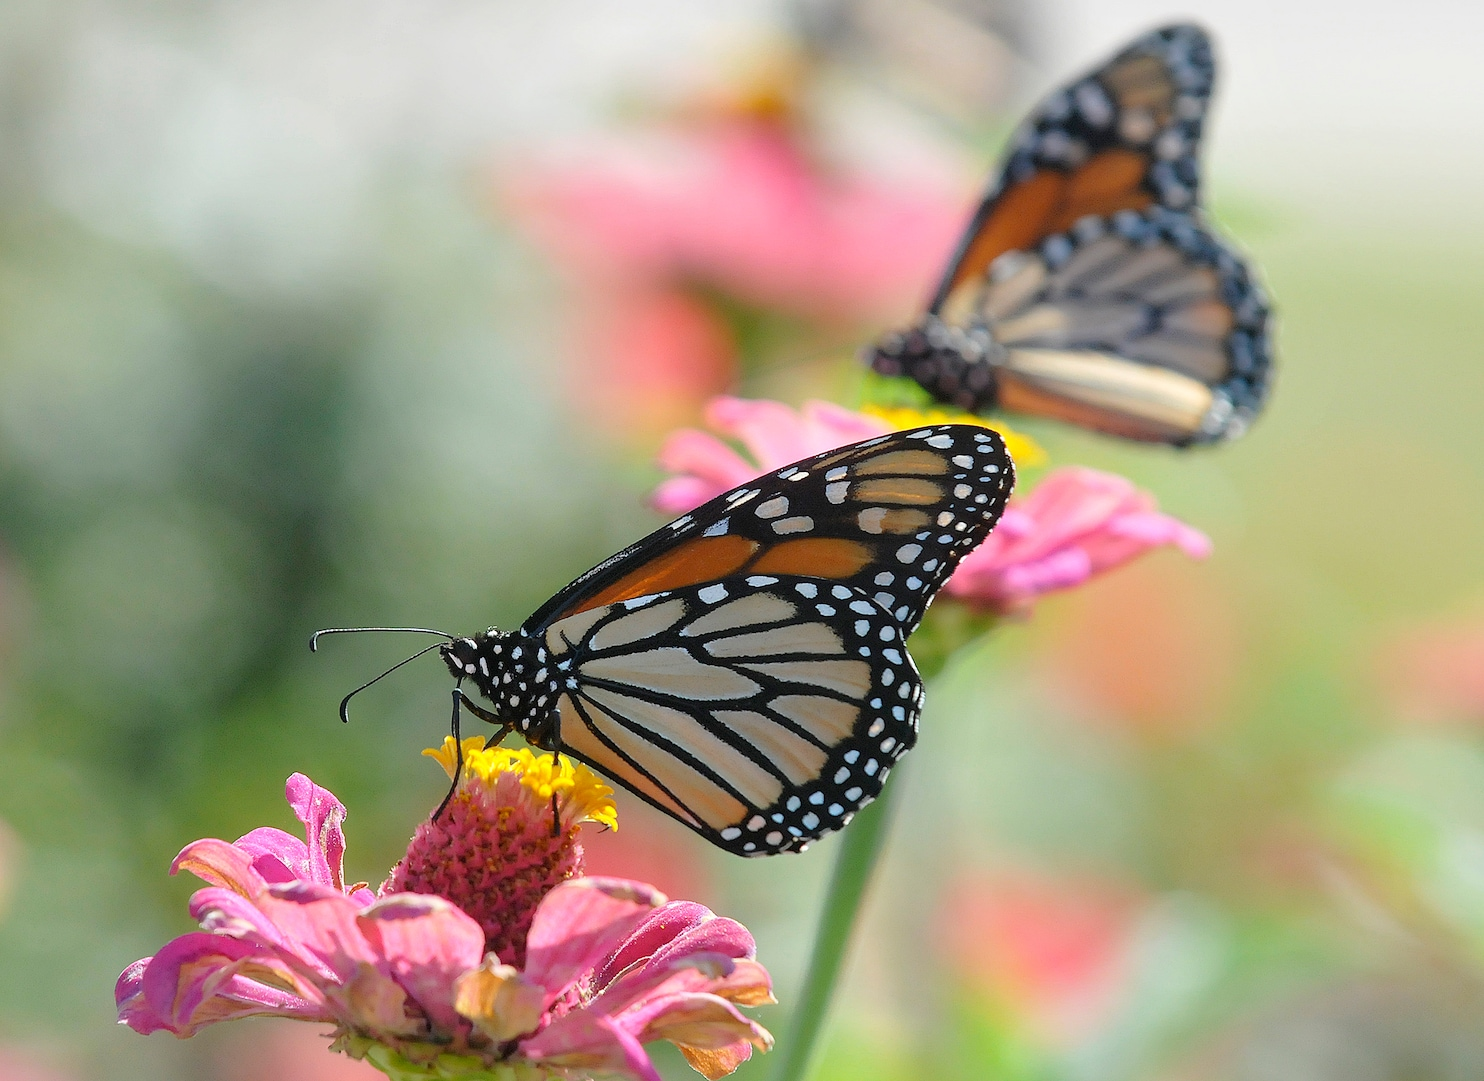 The years first monarch butterflies are entering Mexico